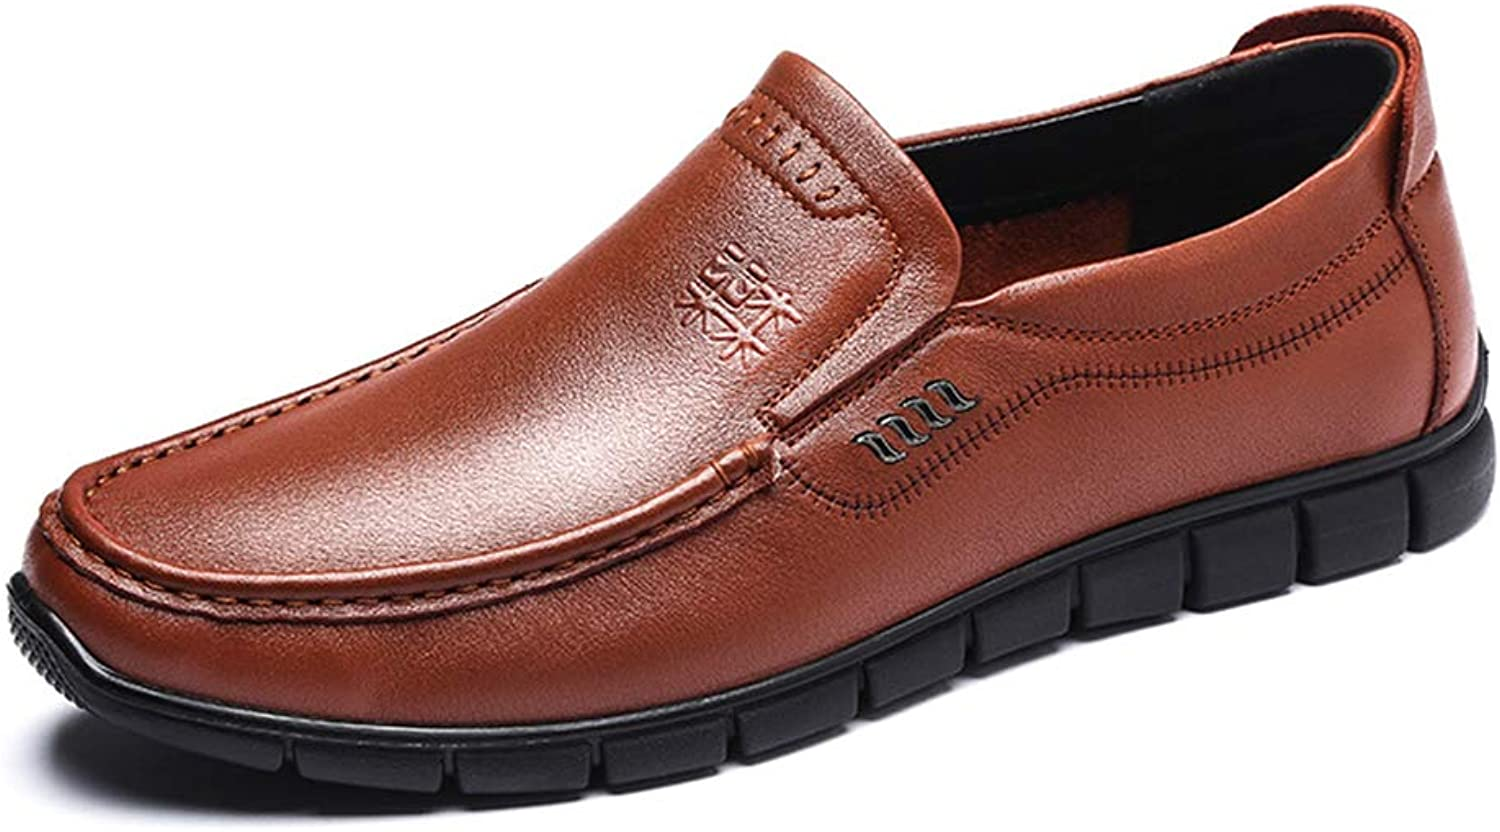 LXLA- Mens Business Casual Dress Leather shoes Slip-On Business Formal Loafers for Men